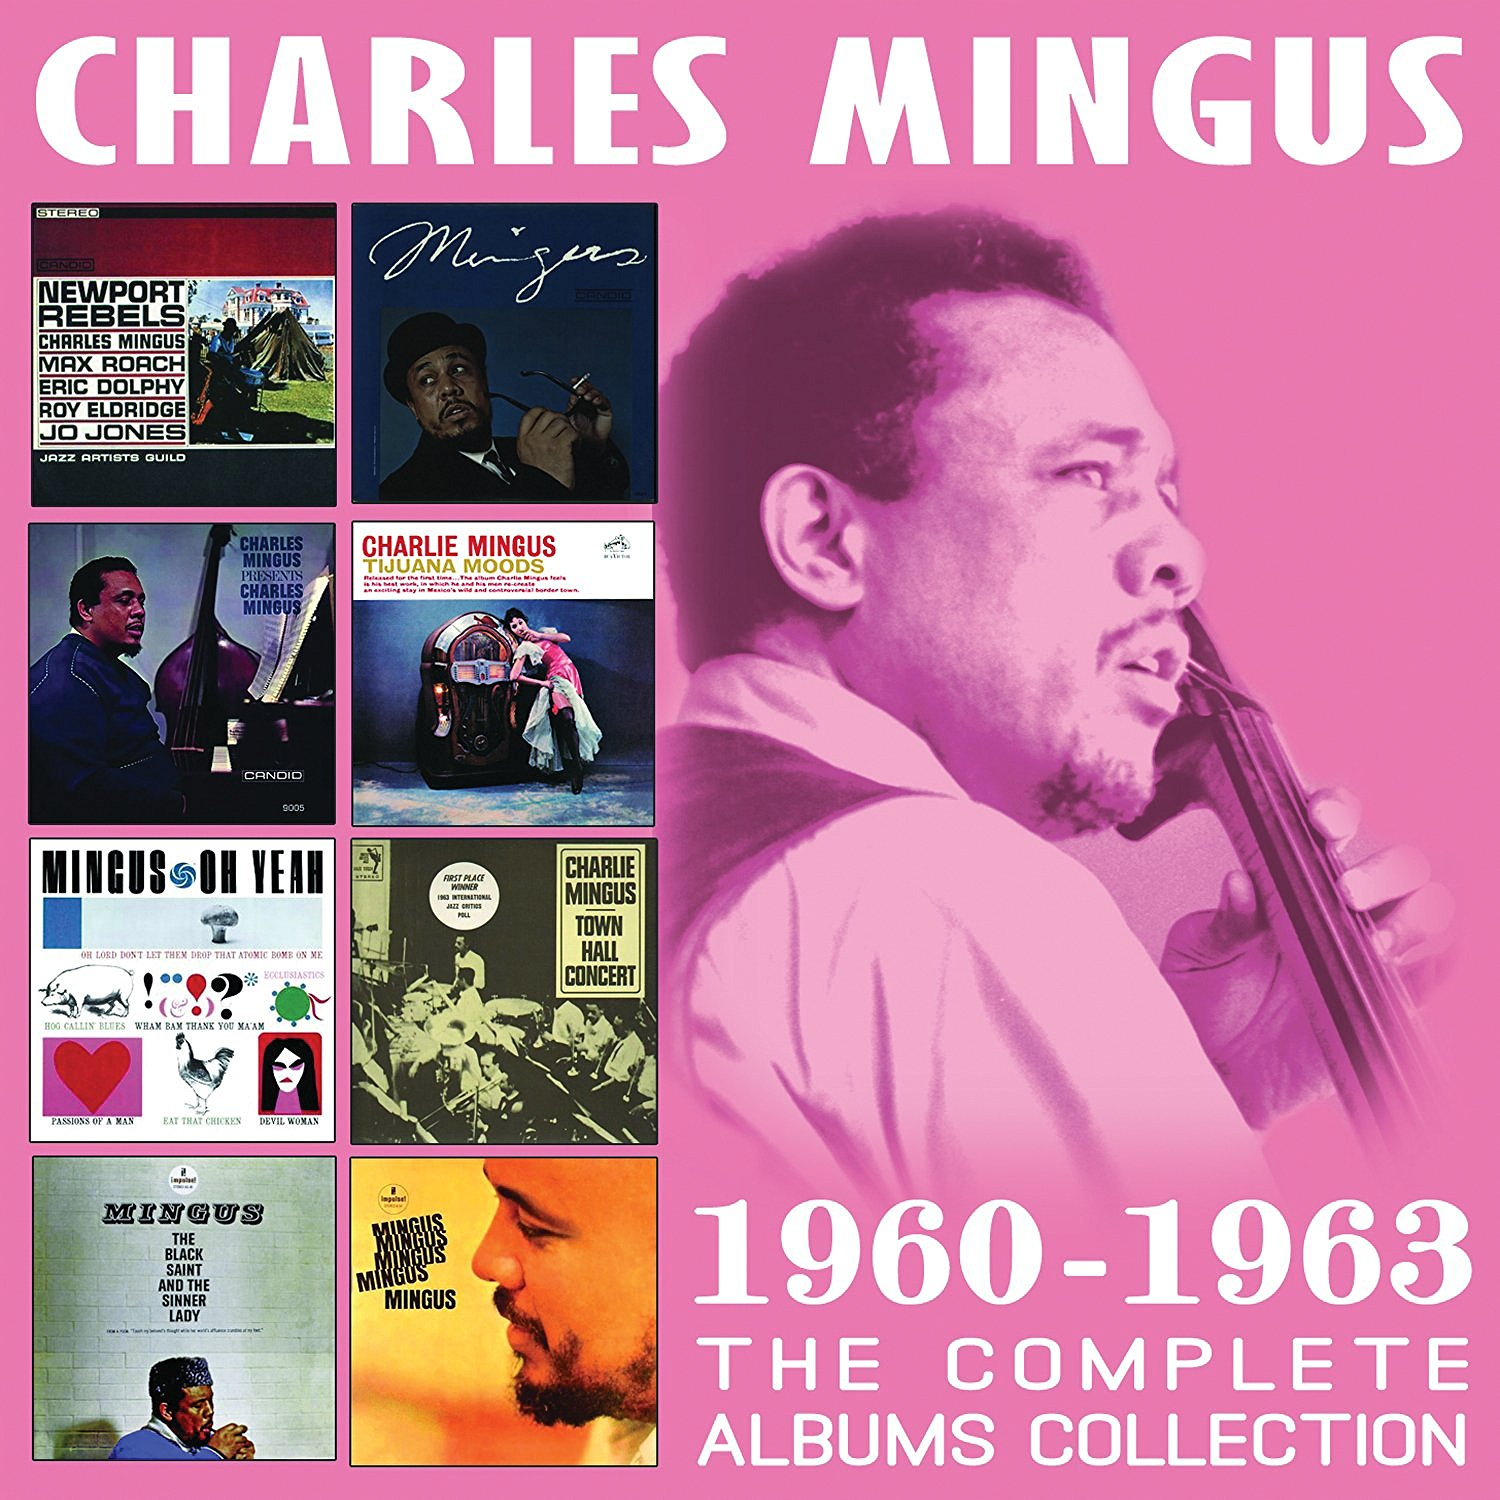 CHARLES MINGUS - The Complete Albums Collection 1960-1963 cover